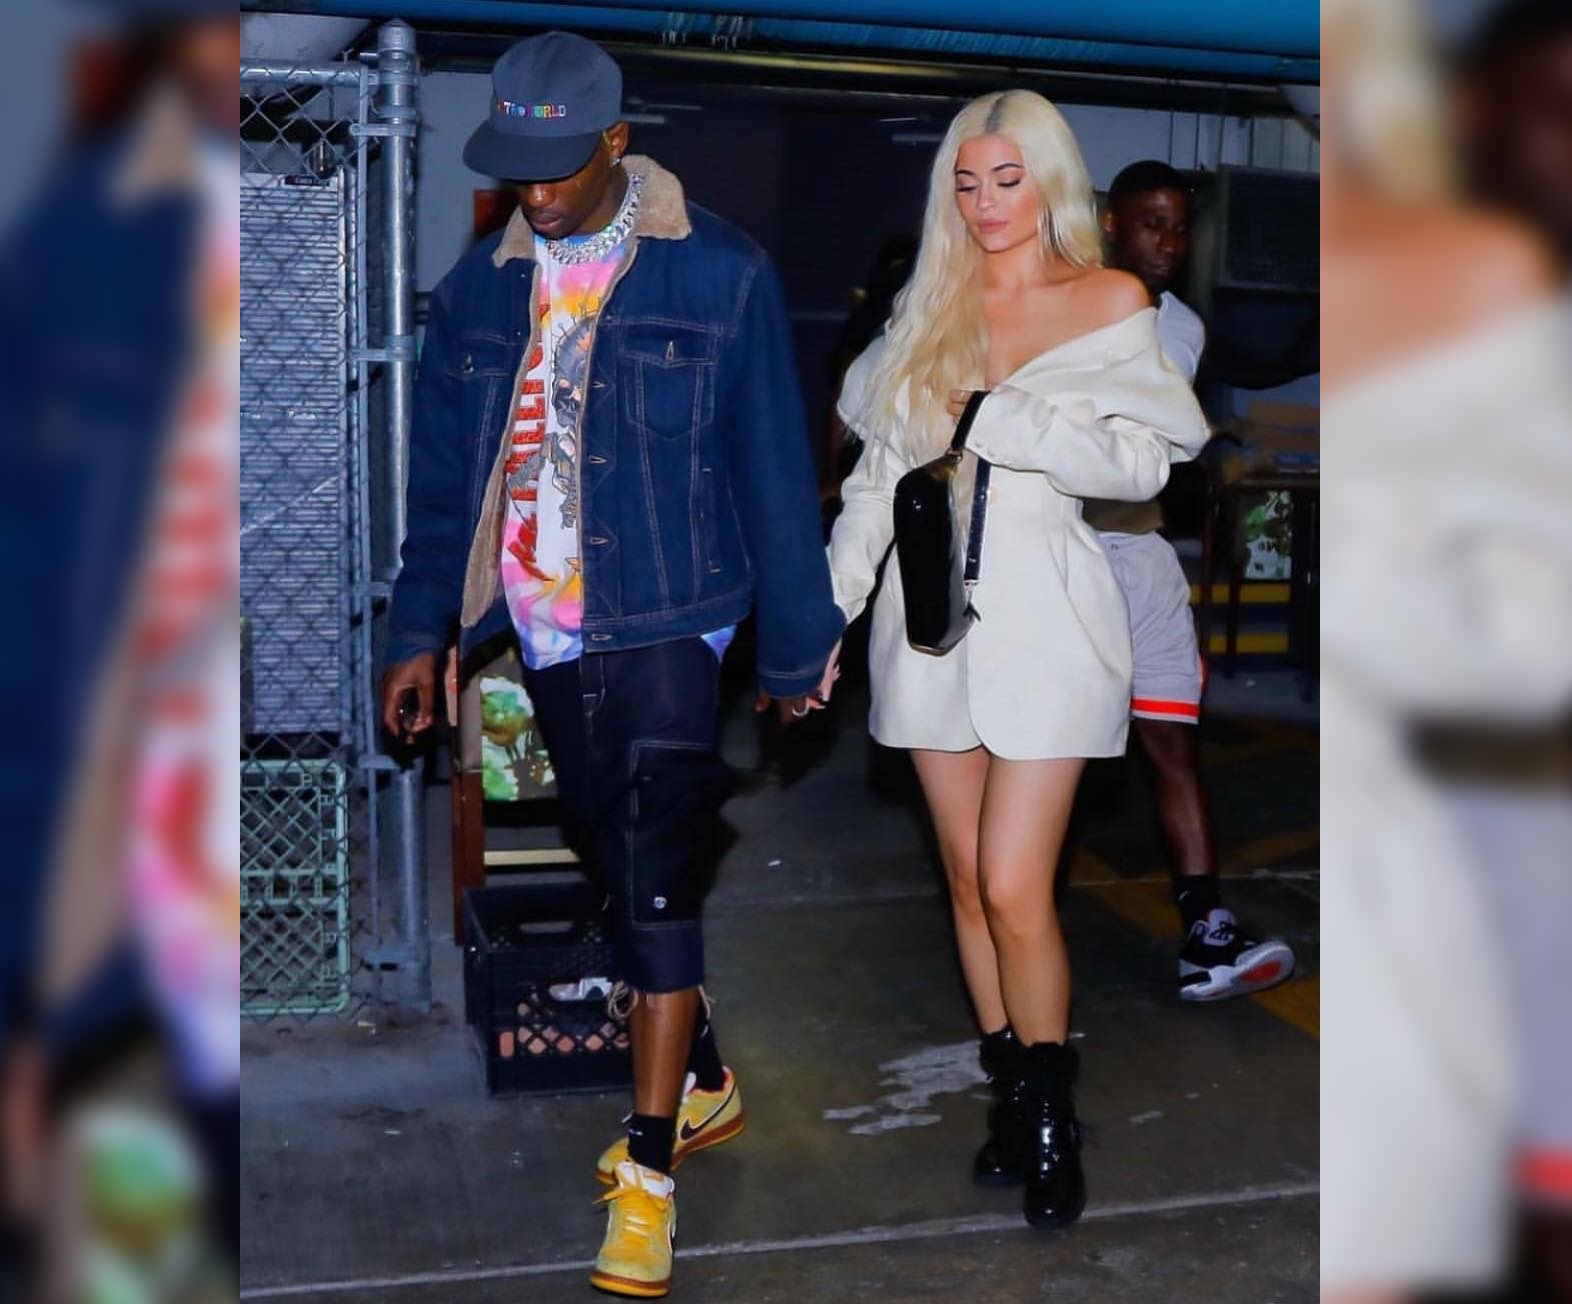 SPOTTED: Travis Scott and Kylie Jenner Go Bold in Miami